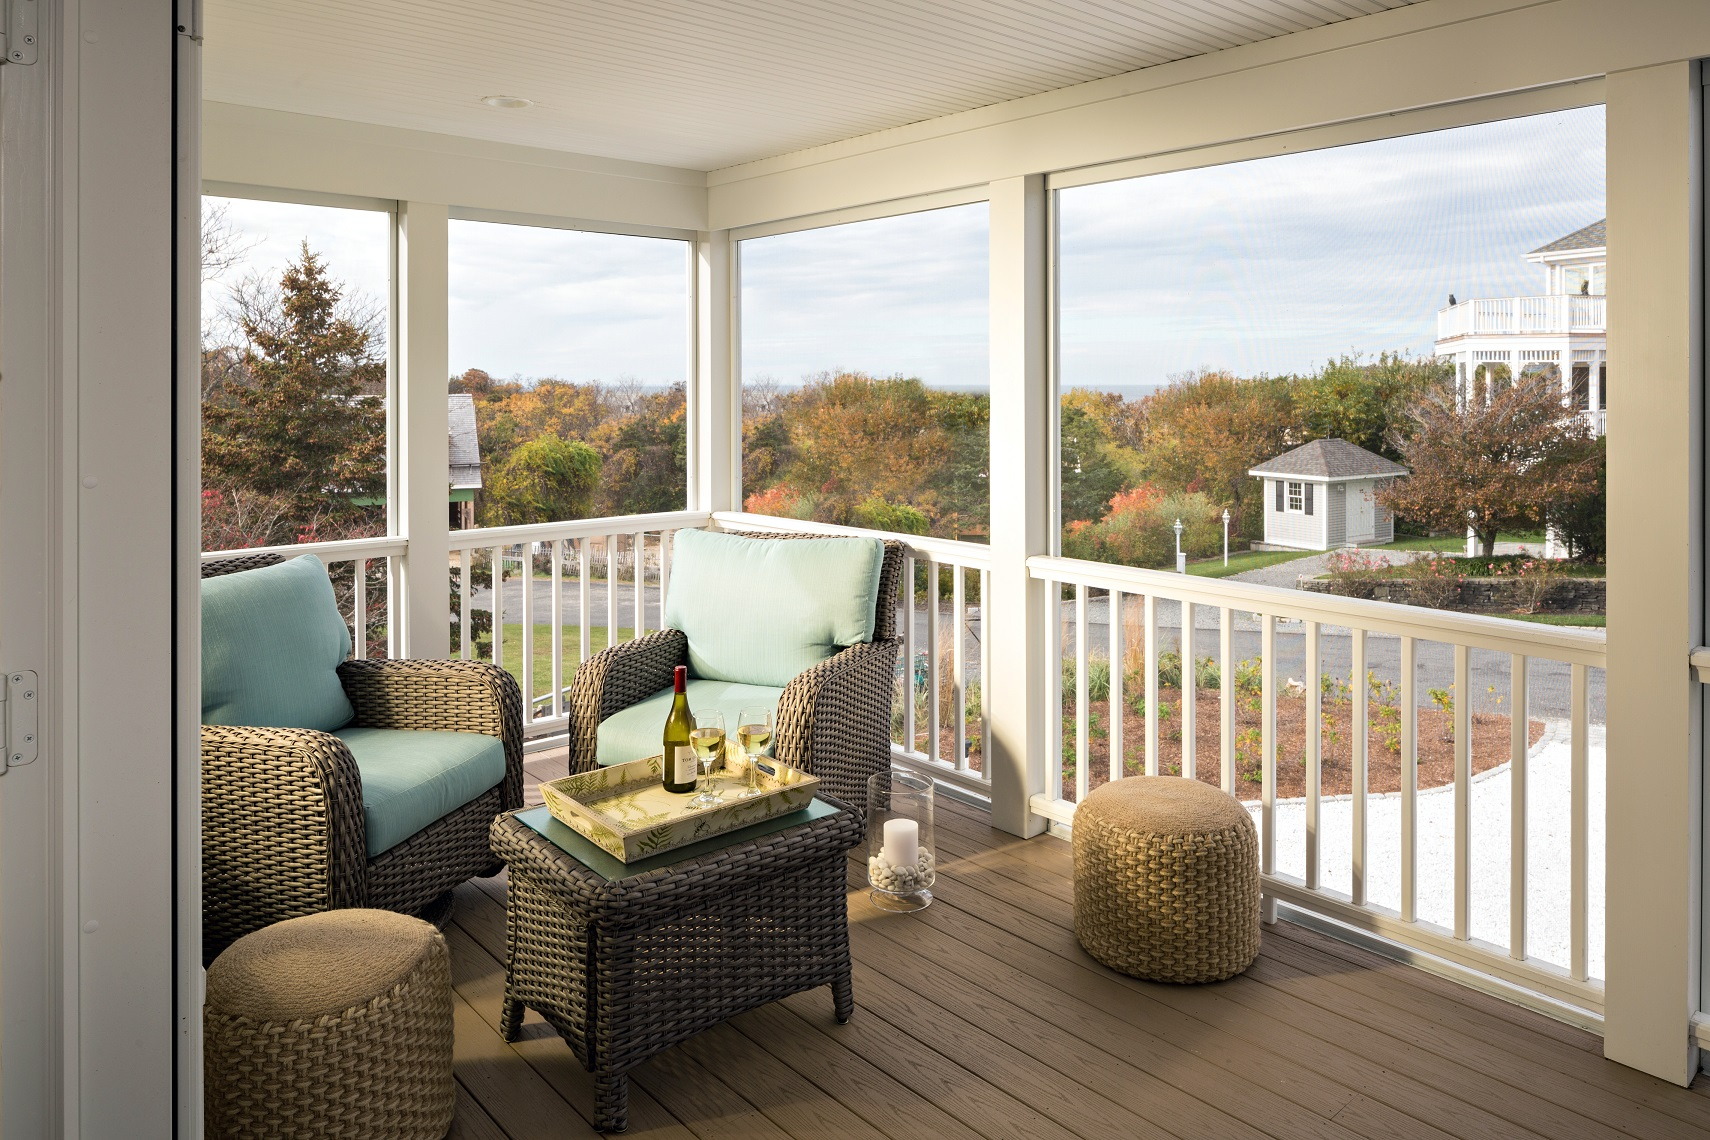 Northside_Bayview_Cape_screened_porch_web.jpg